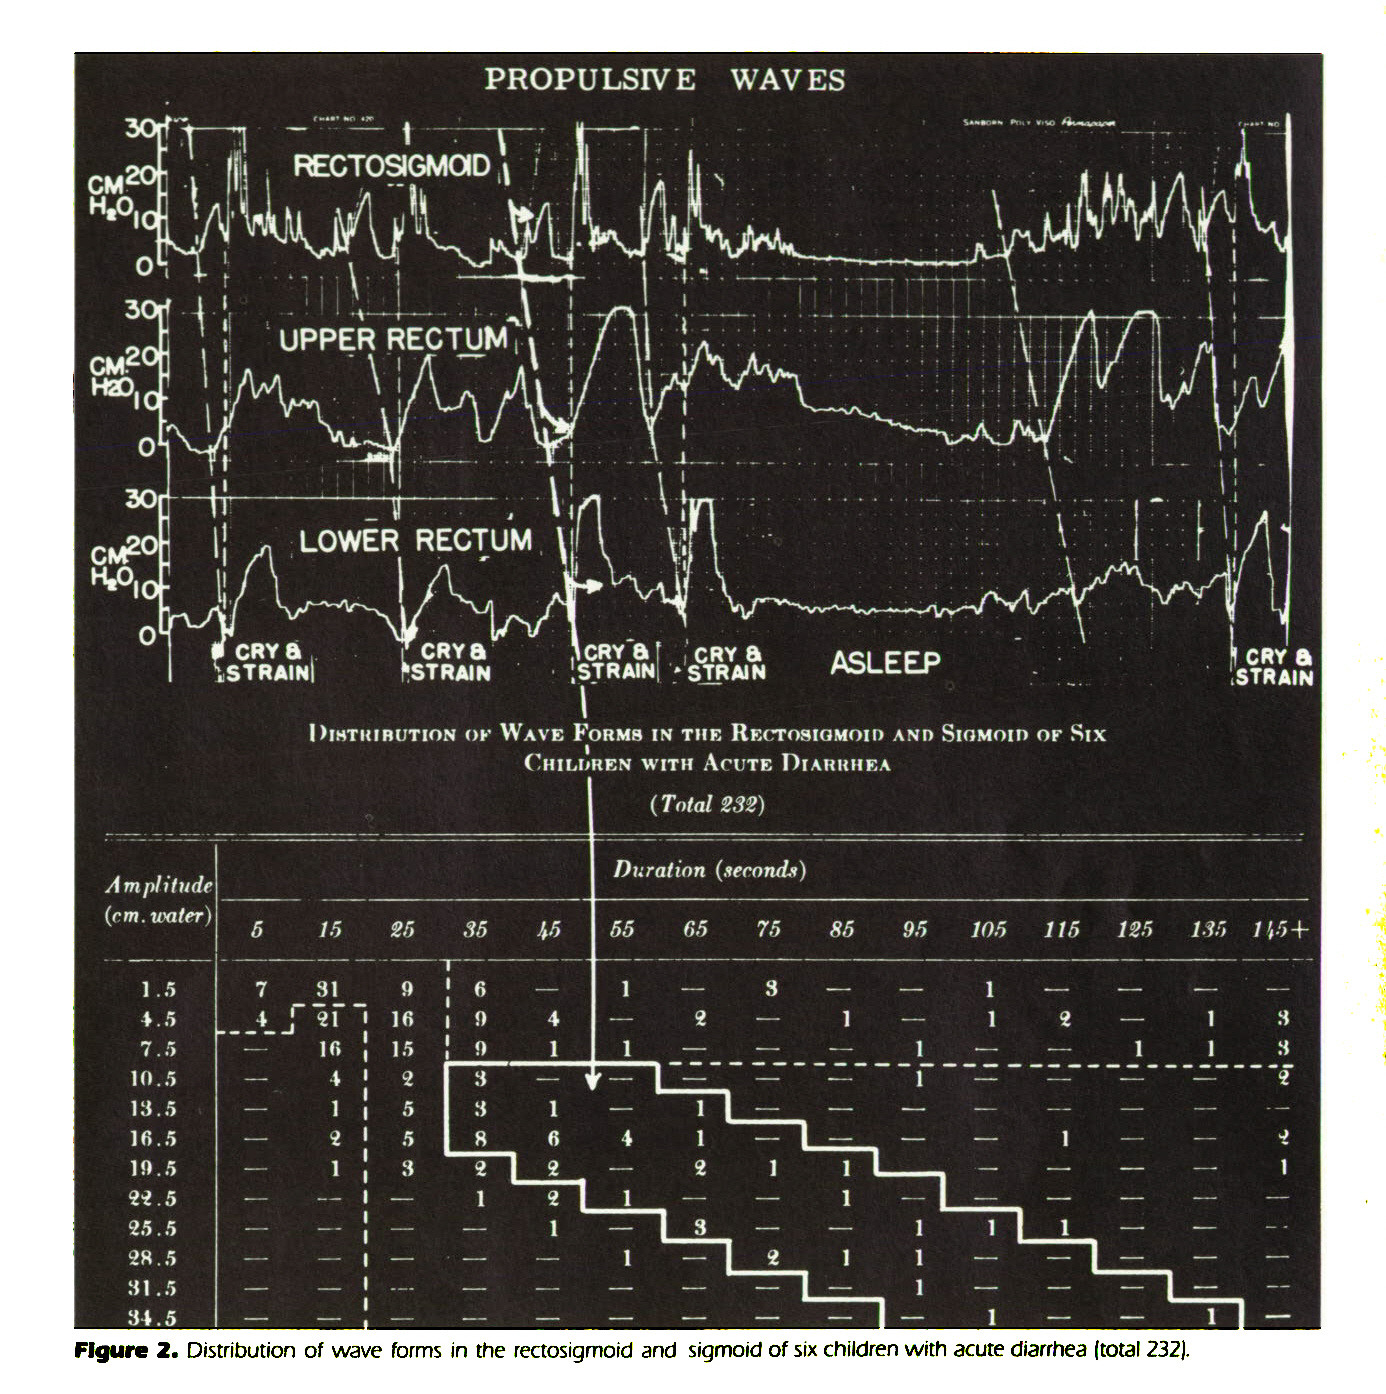 Figure 2. Distribution of wave forms in the rectosigmoid and sigmoid of six children with acute diarrhea (total 232).